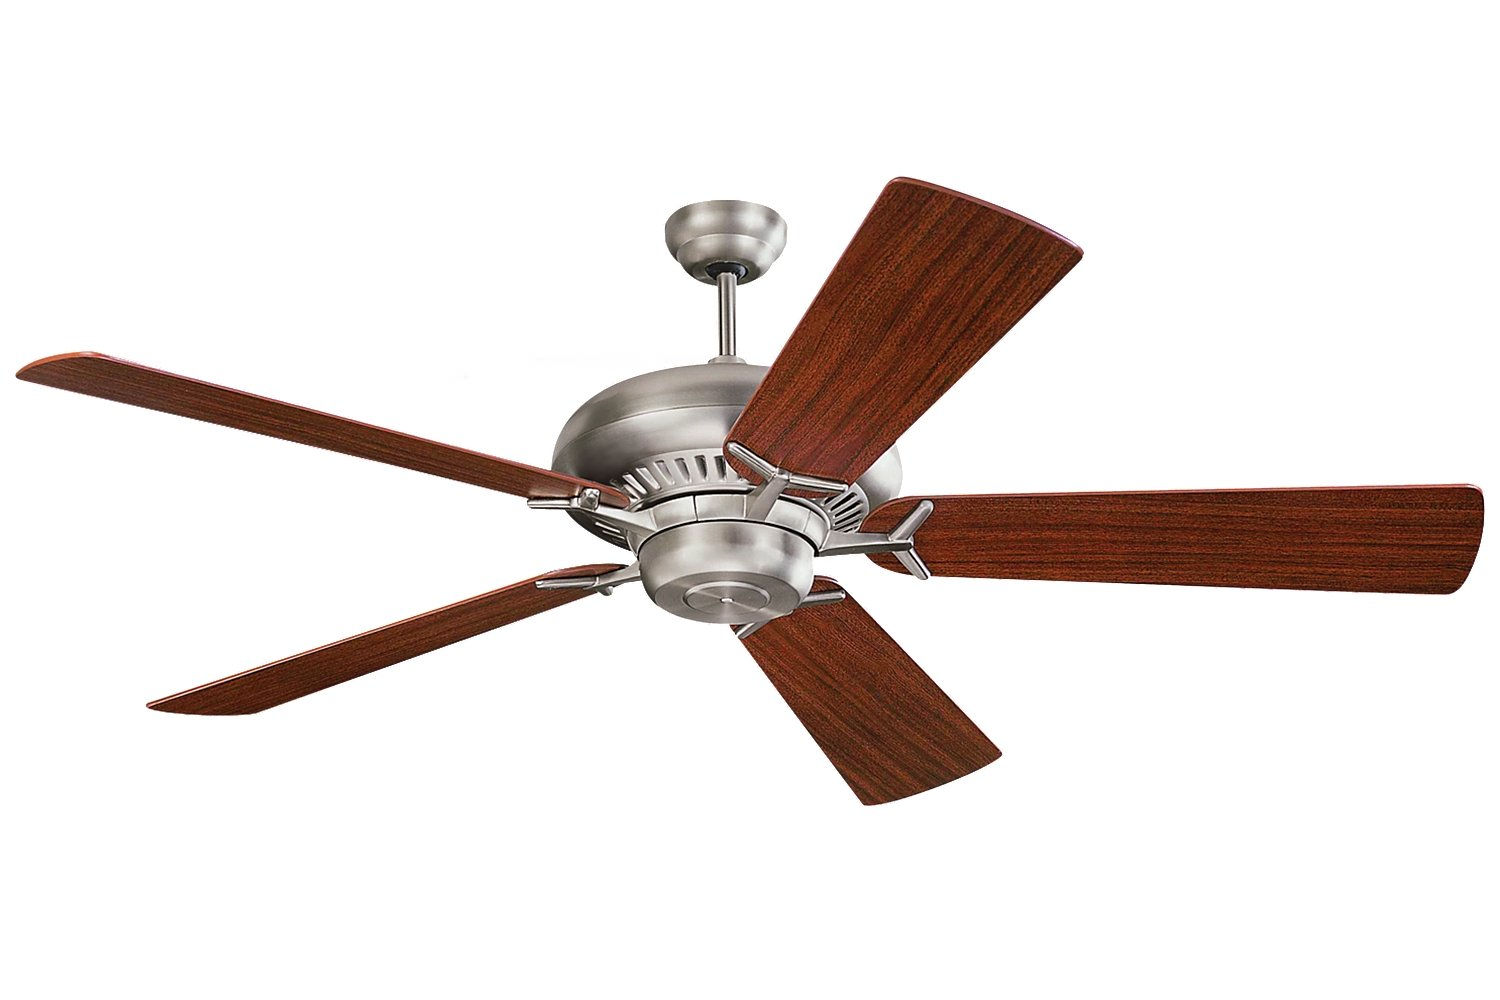 Monte carlo 5gp60wh grand prix 60 ceiling fan white amazon aloadofball